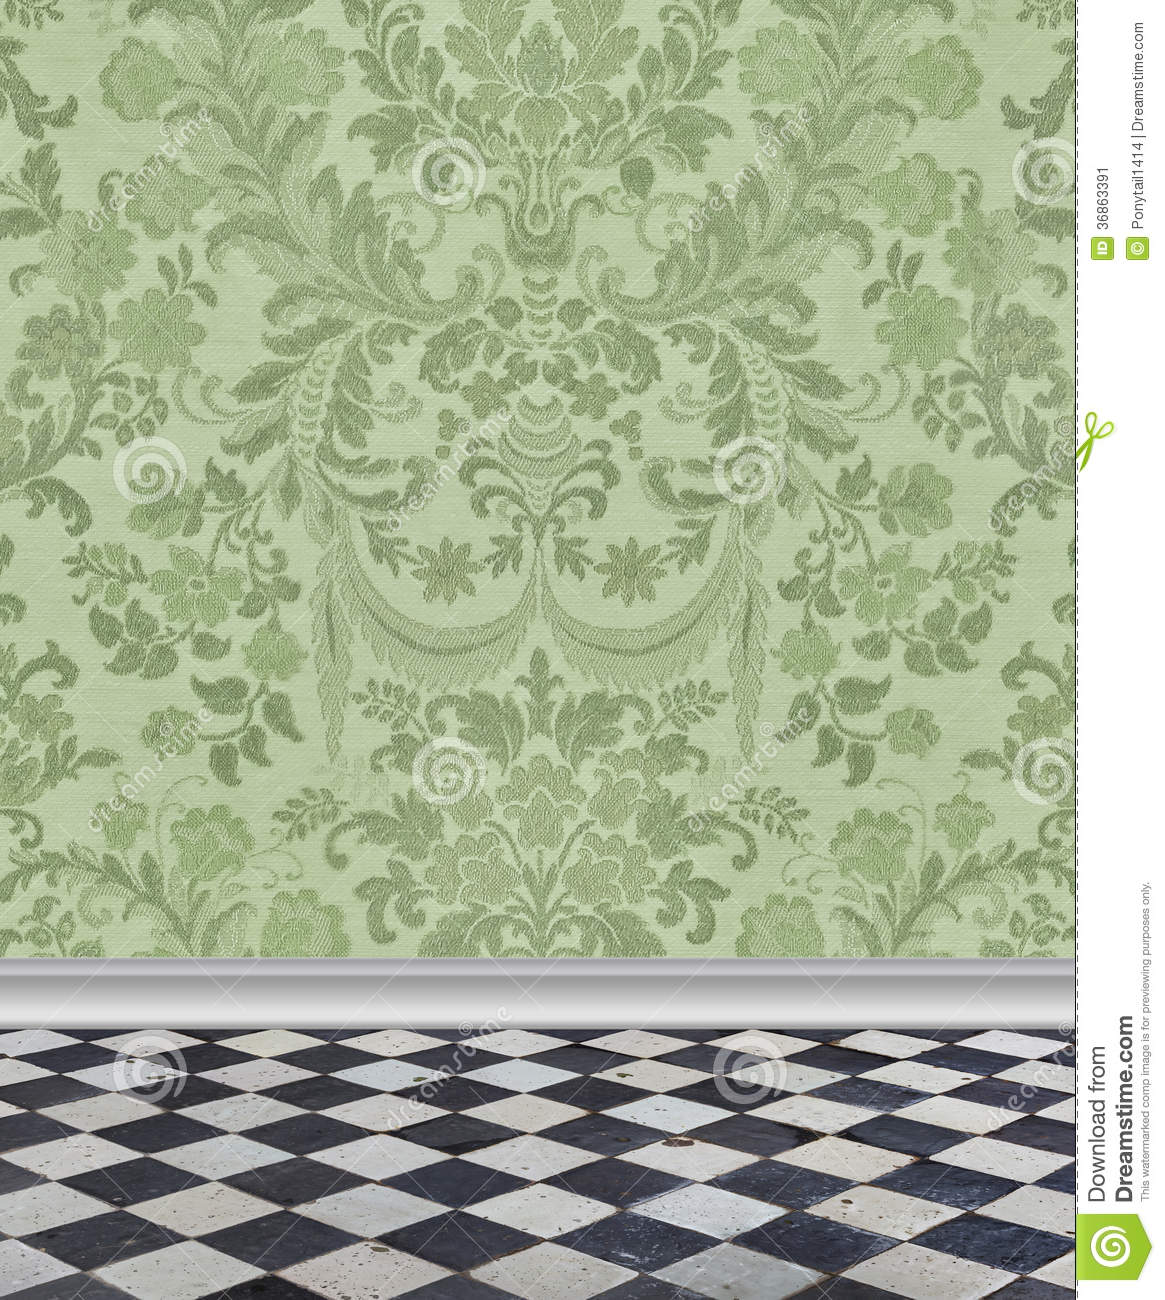 Elegant Cream Hallway With Damask Wallpaper: Green Damask Wall And Marble Floor Stock Image